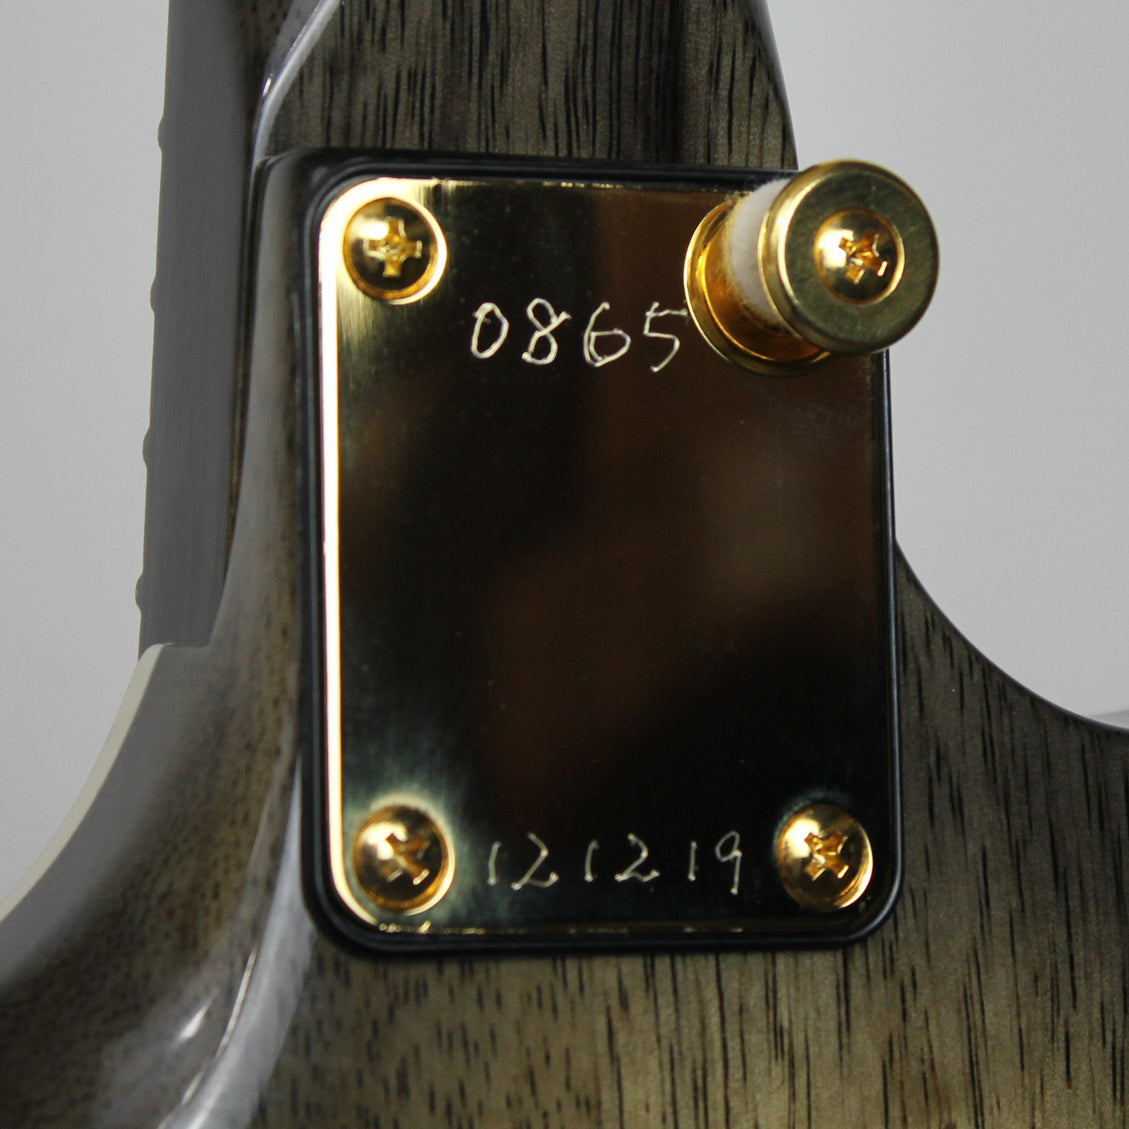 Pensa NR Custom Honey Burst 0865